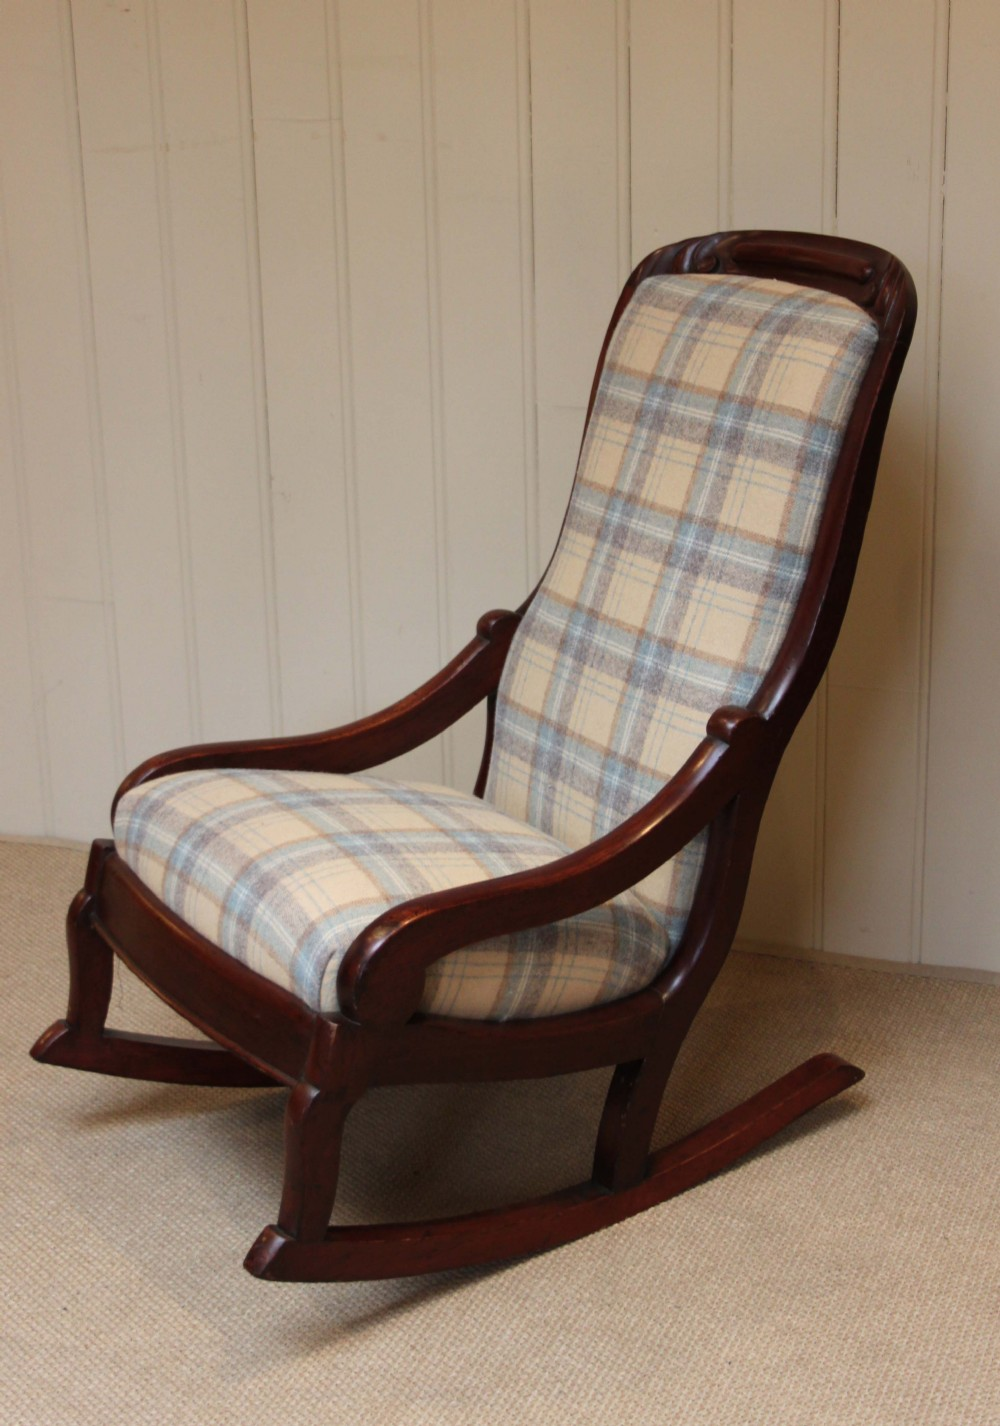 Phenomenal Late Victorian Upholstered Rocking Chair 244300 Beatyapartments Chair Design Images Beatyapartmentscom